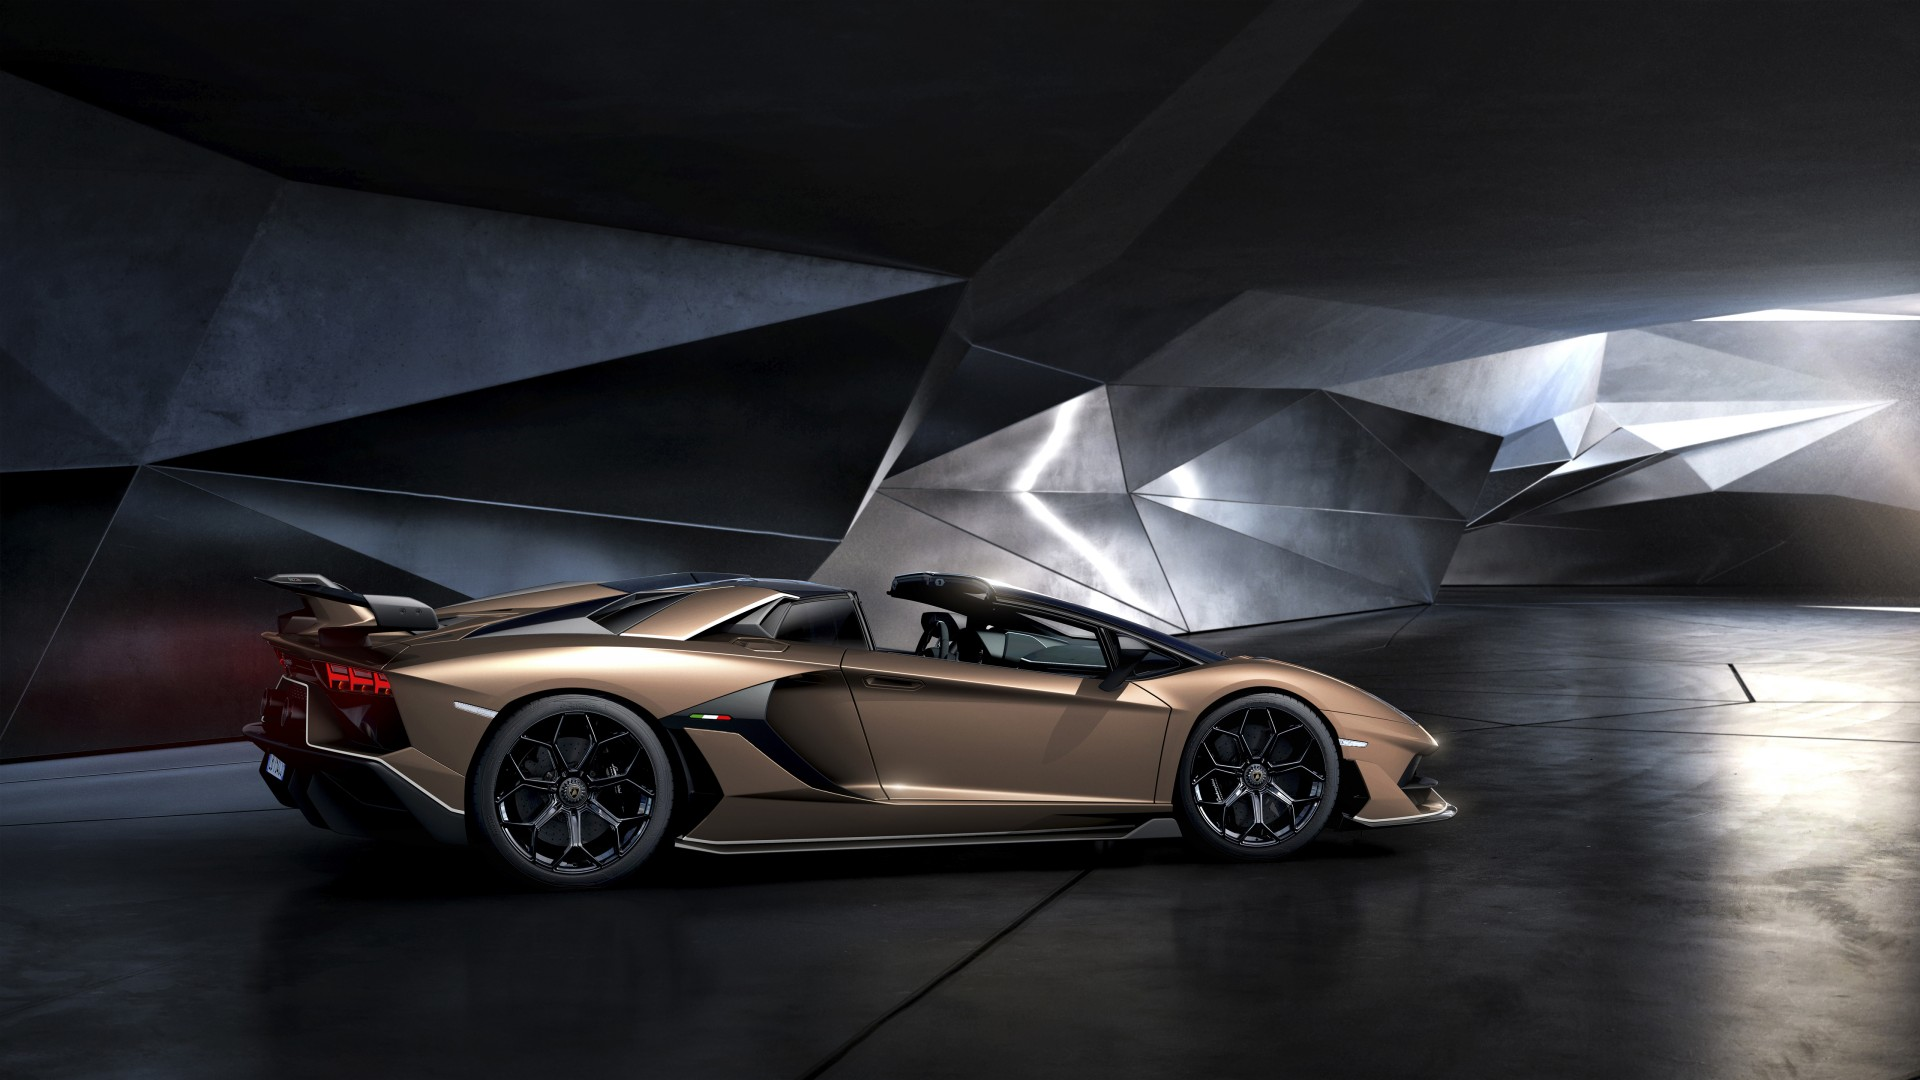 lamborghini aventador svj roadster    wallpaper hd car wallpapers id